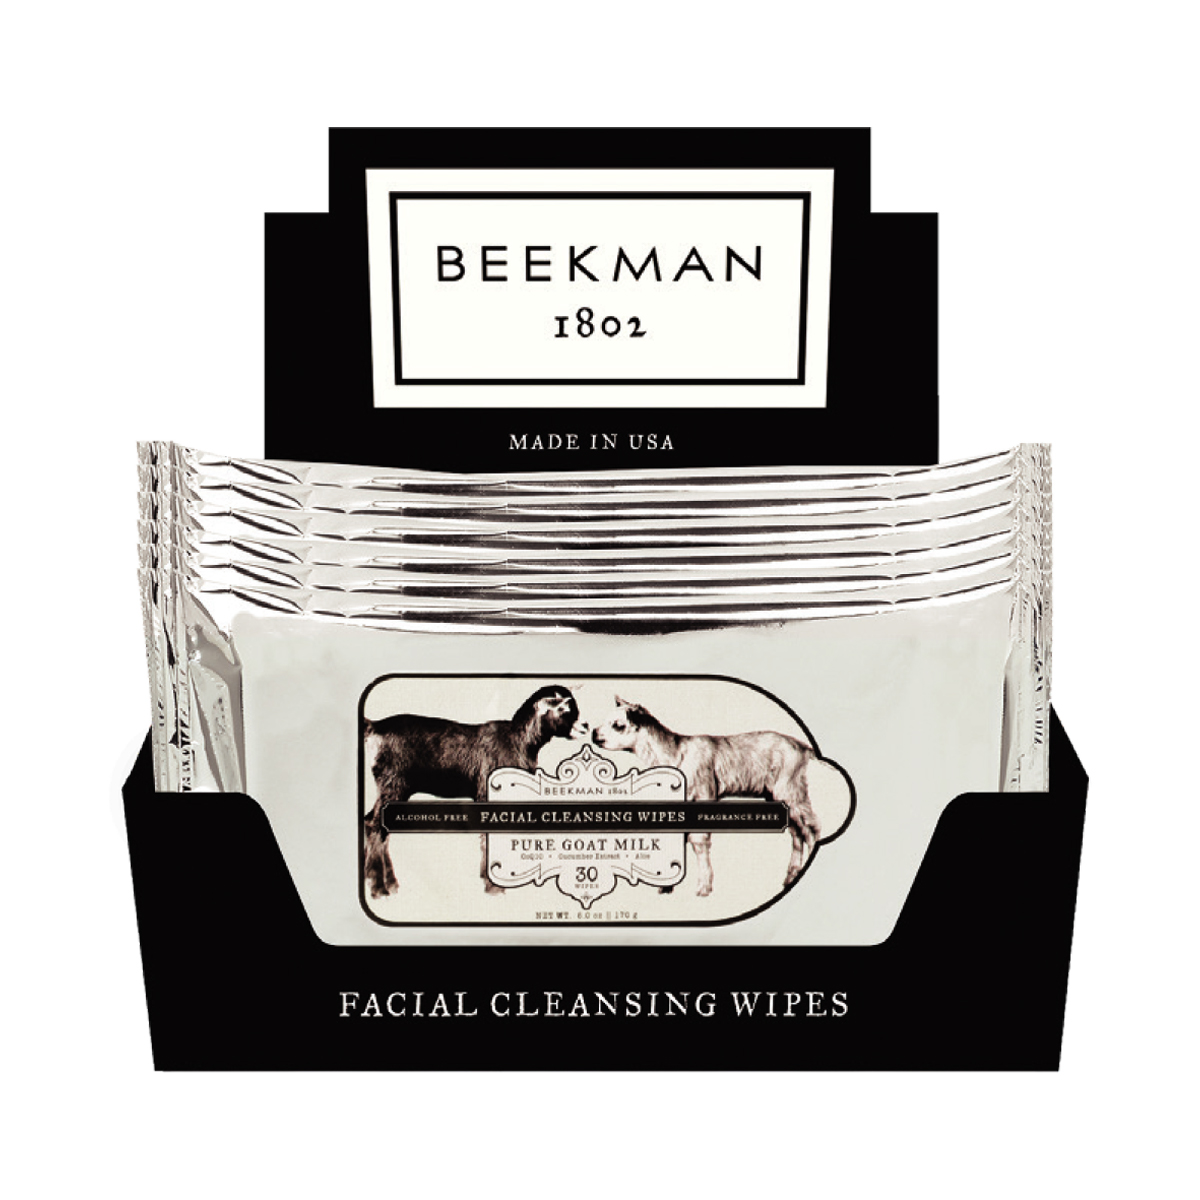 Beekman Pure Face Wipes